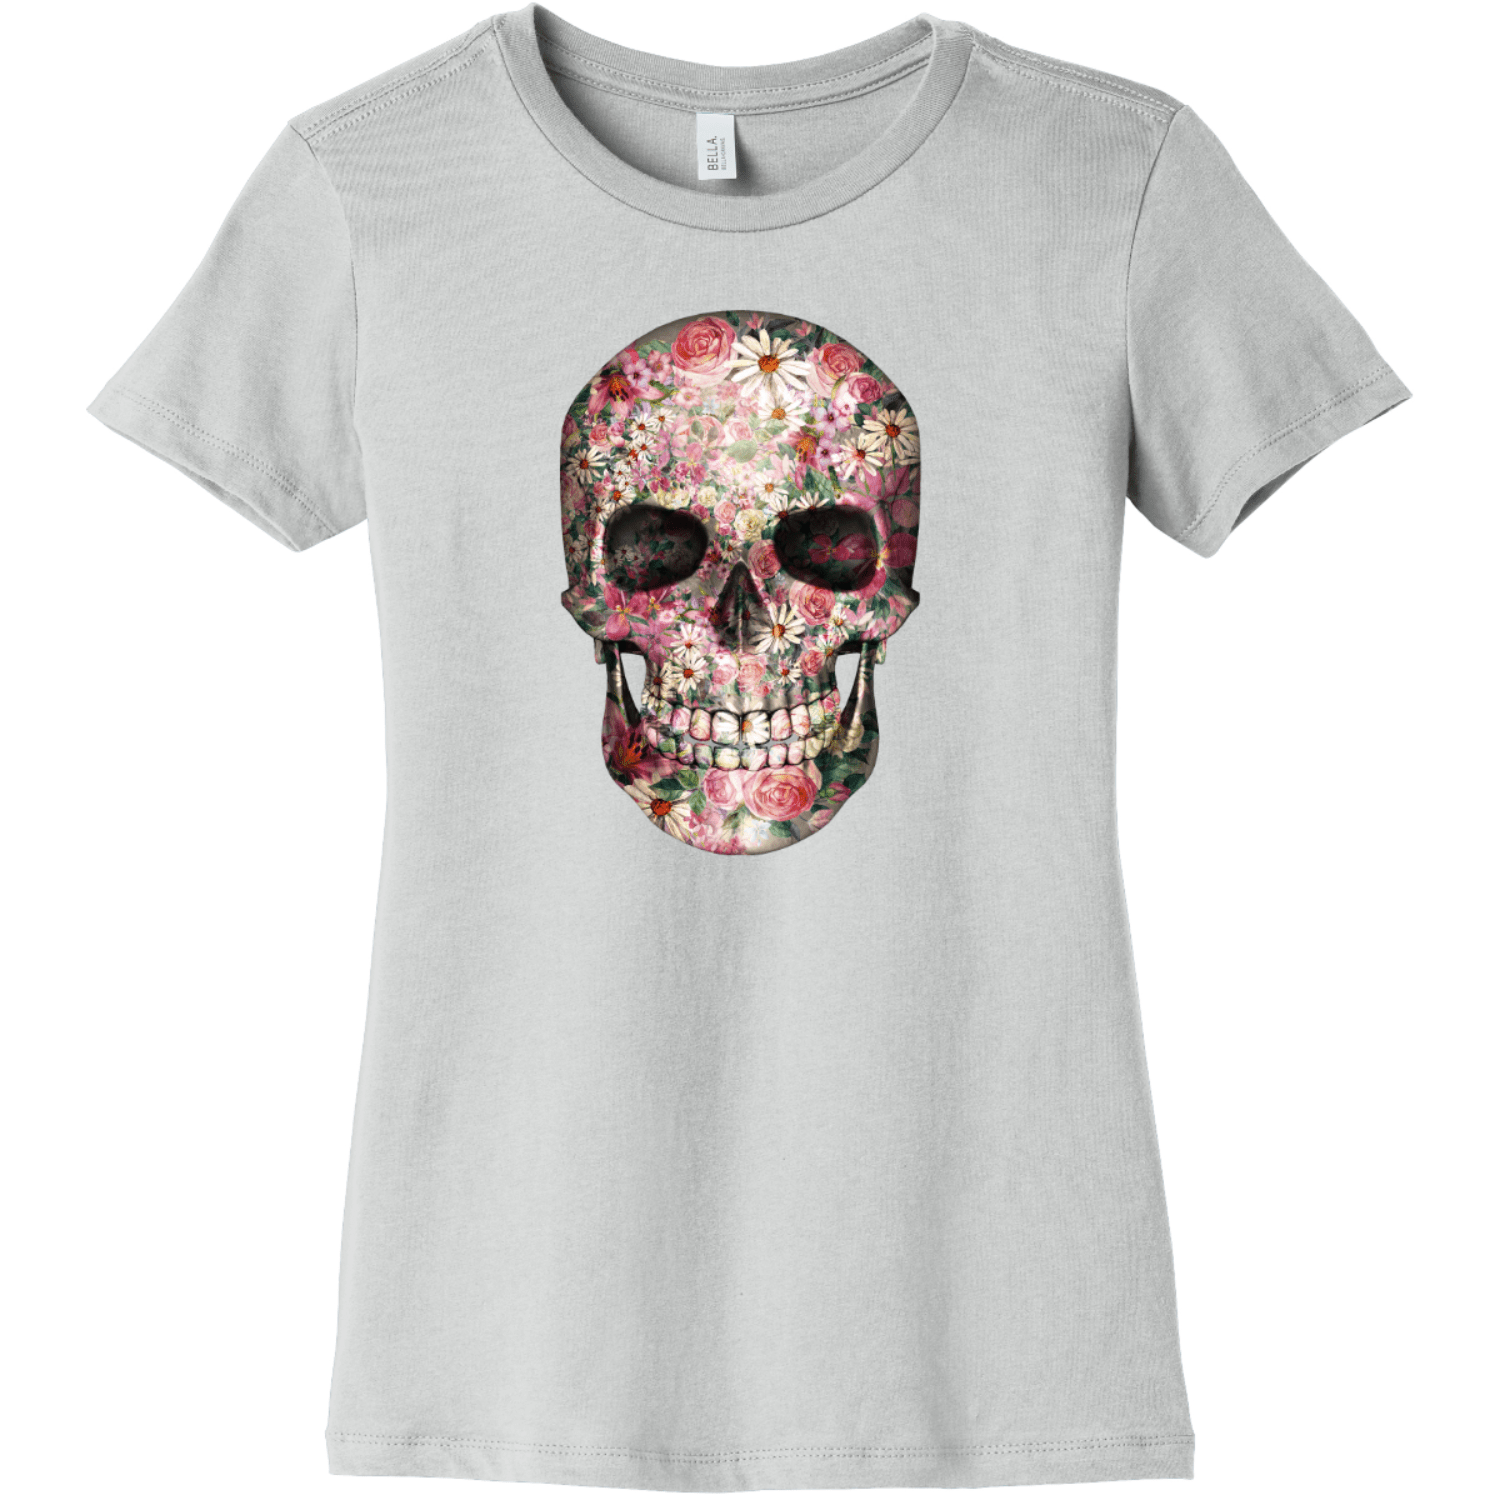 Floral Skull T Shirt For Women Silver Bella Canvas 6004 Ladies The Favorite Tee